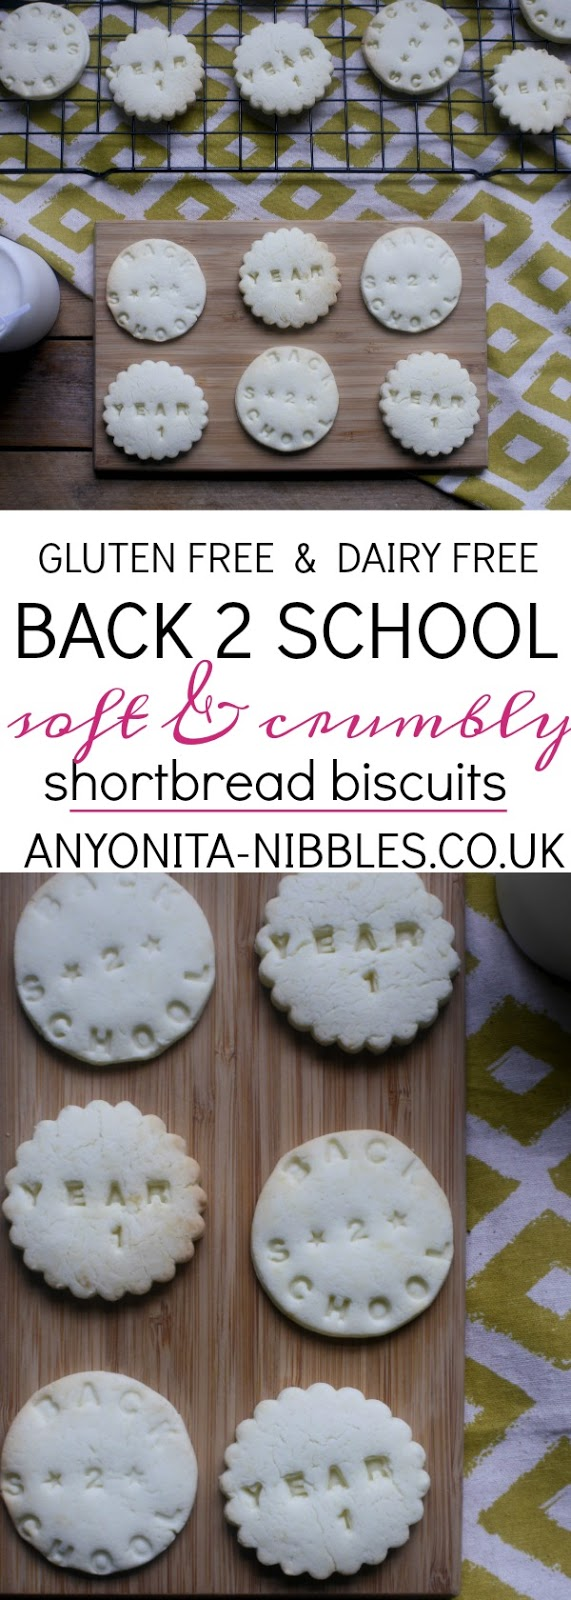 How to make gluten free and dairy free shortbread biscuits